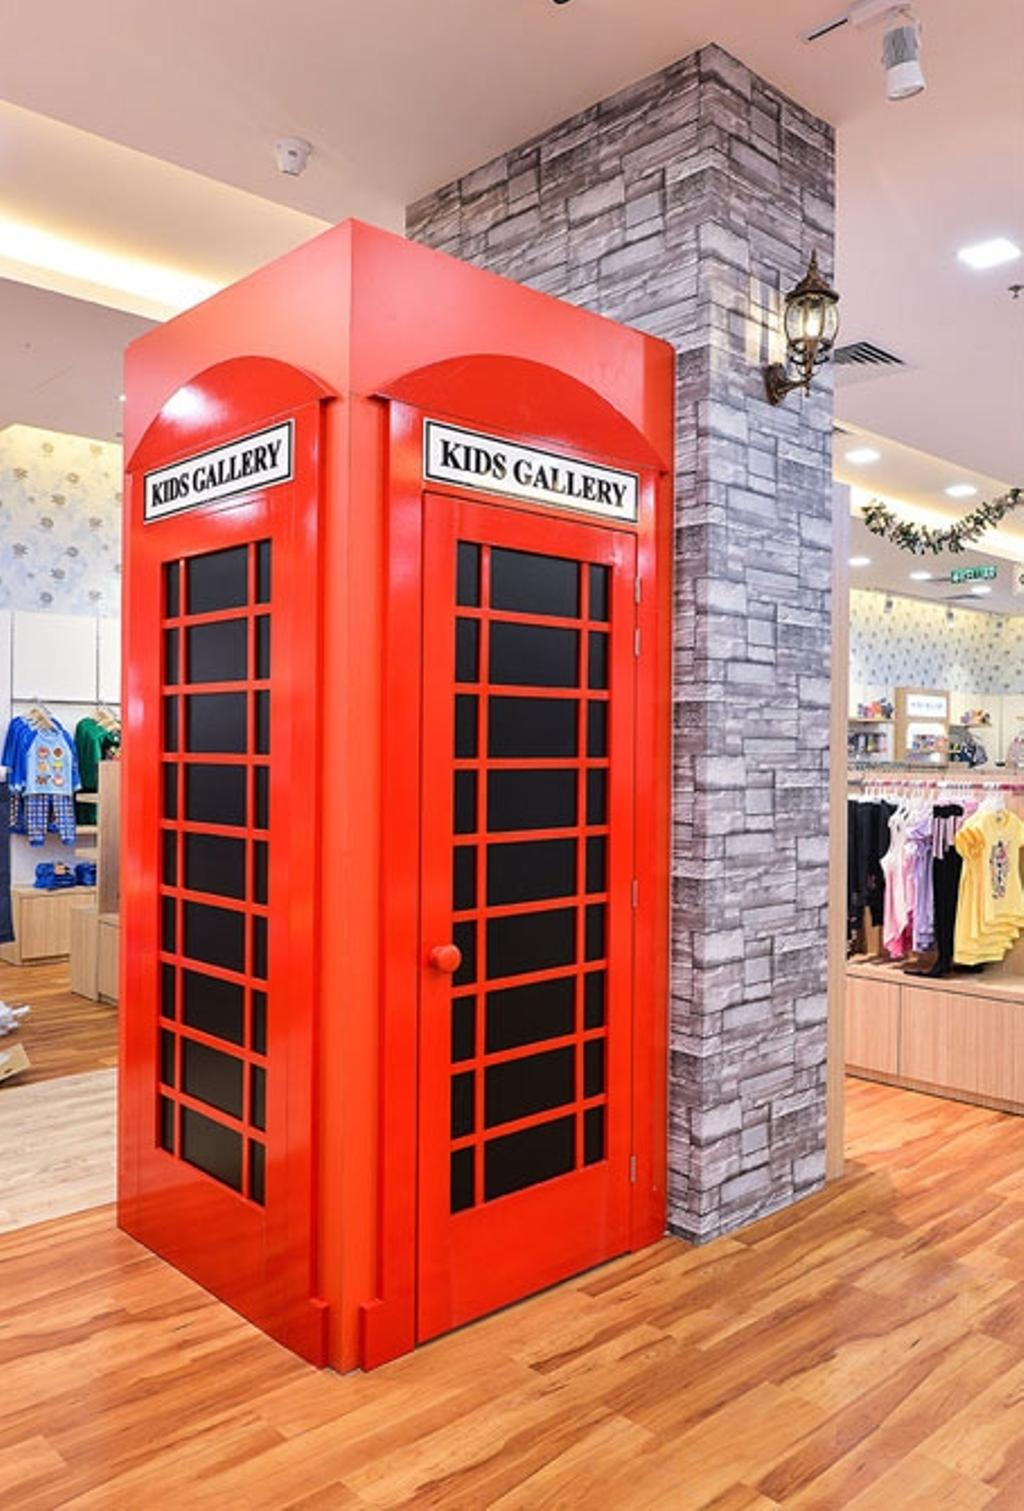 Kid's Gallery, Commercial, Interior Designer, Spazio Design Sdn Bhd, Traditional, Phone Booth, Kids, Departmental Store, Clothes, Clothing Store, Kiosk